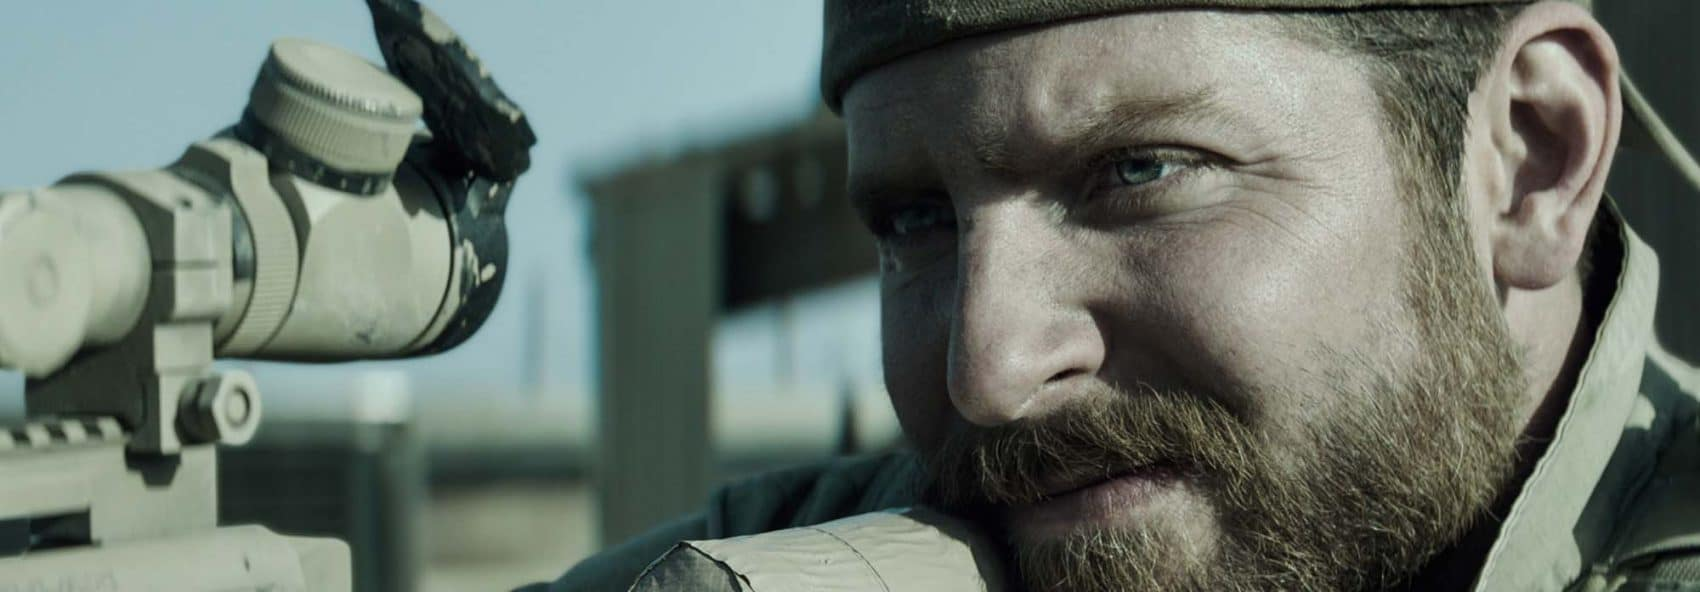 American Sniper – Critique du film